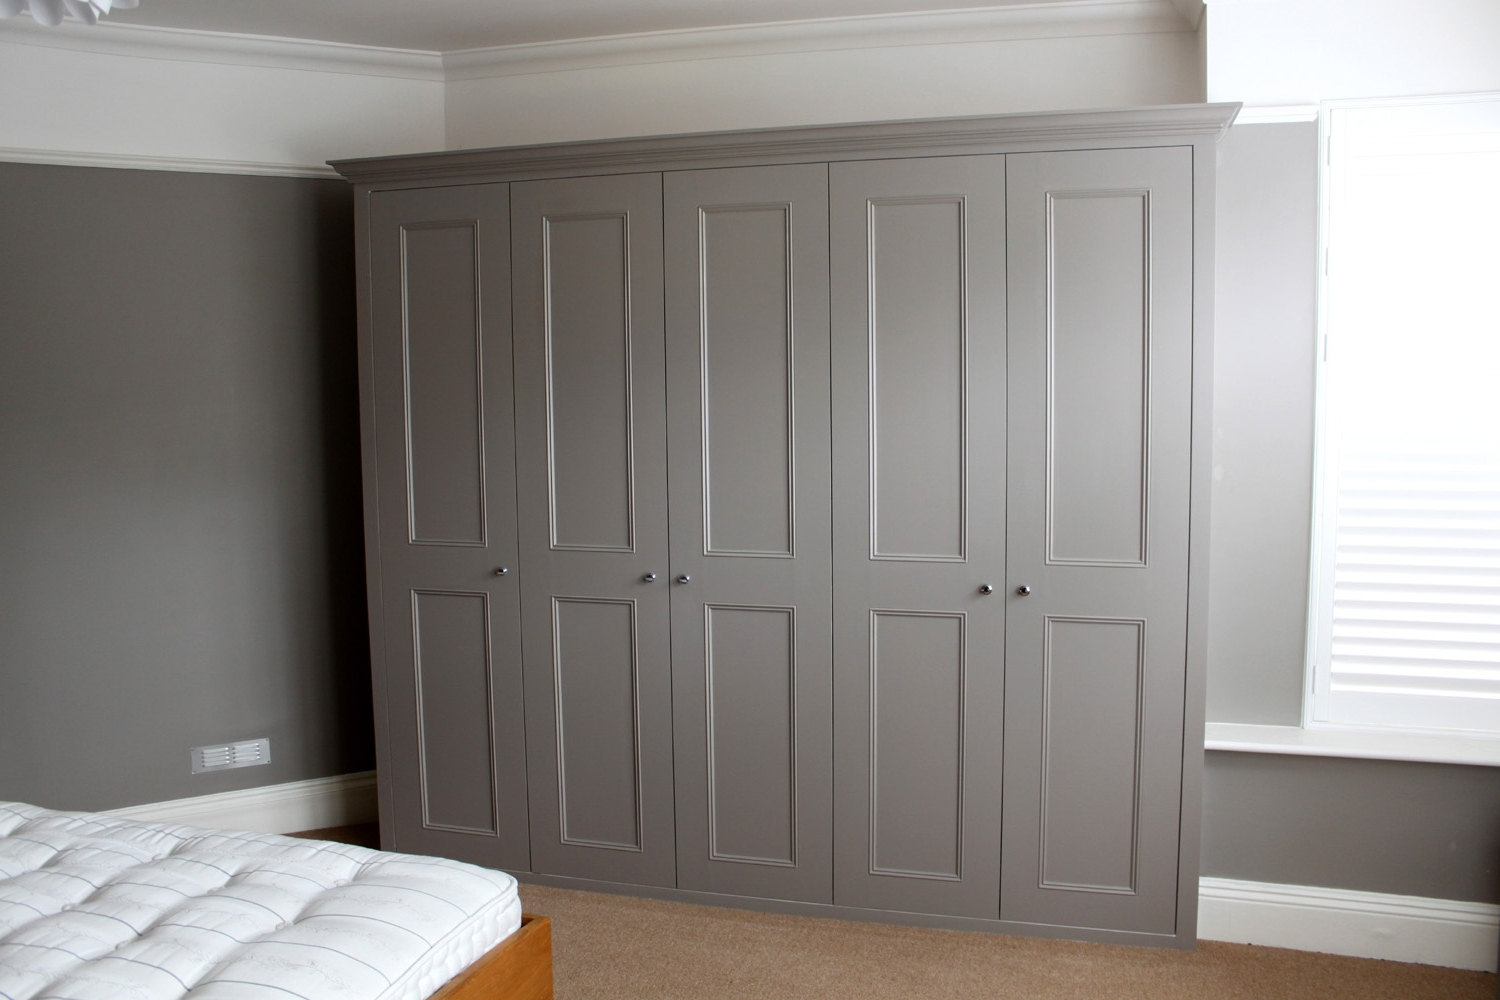 15 collection of solid wood fitted wardrobes. Black Bedroom Furniture Sets. Home Design Ideas